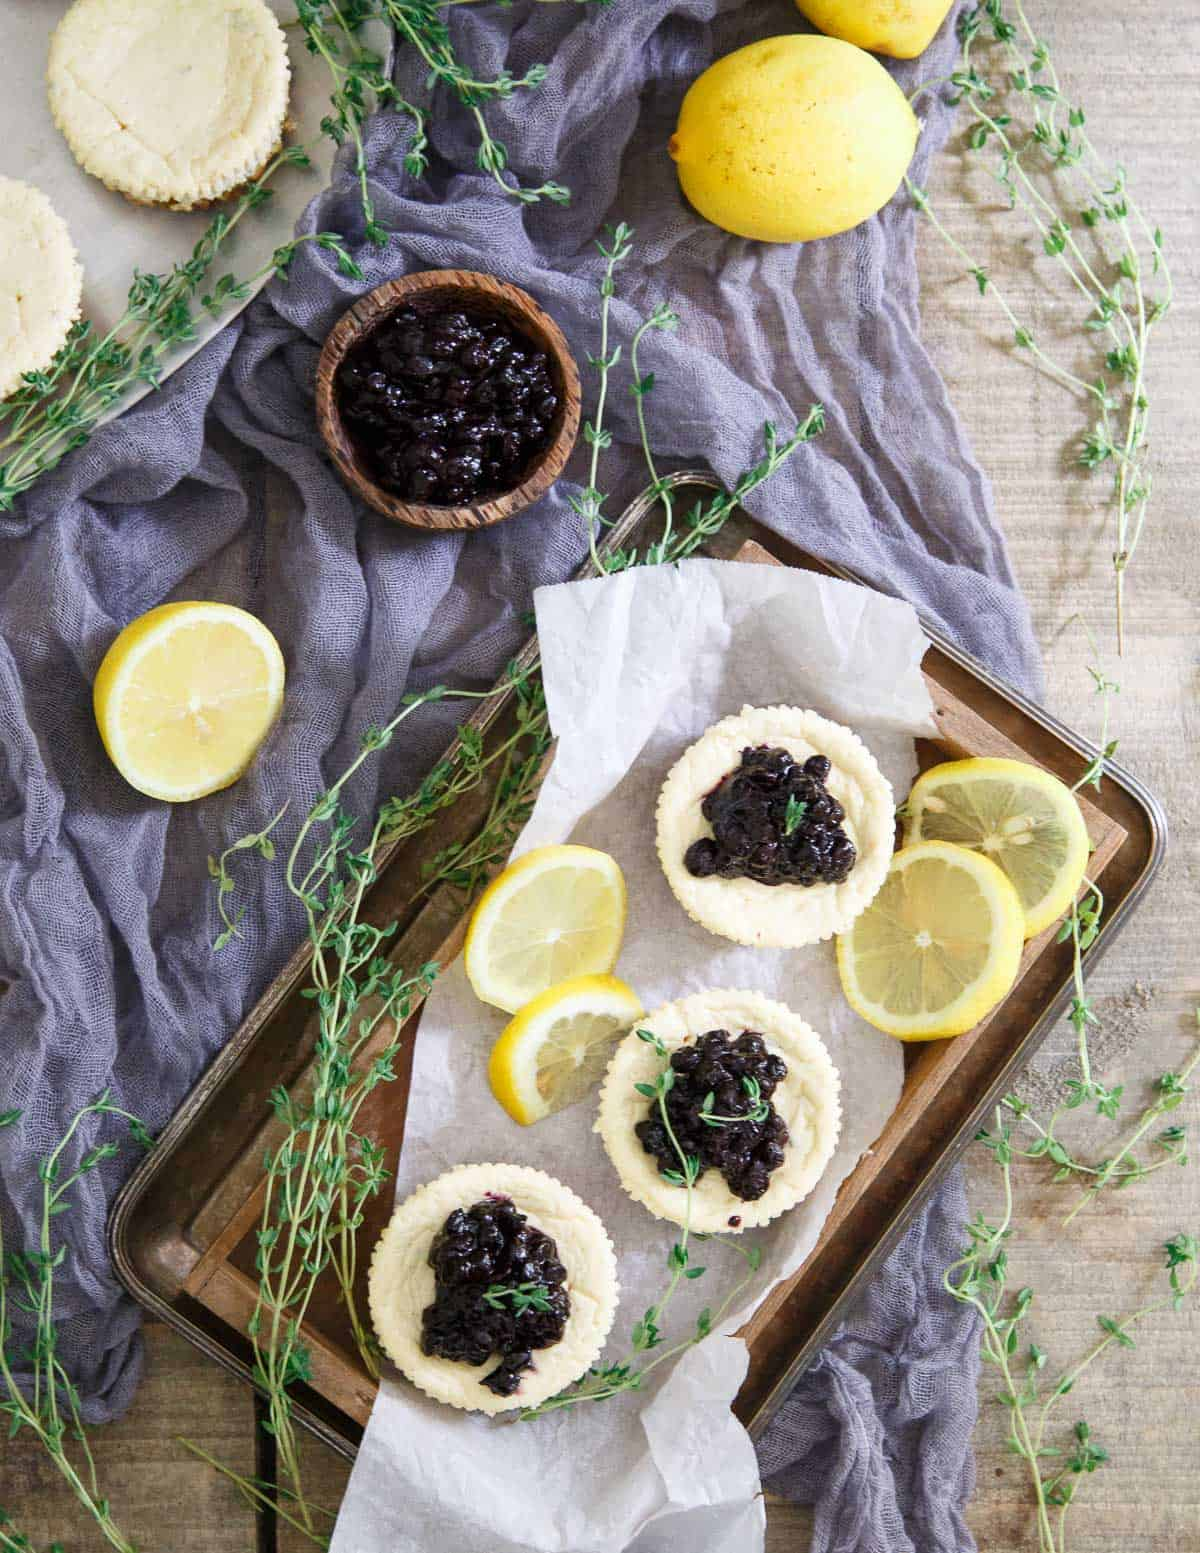 Lemon Thyme Blueberry Mini Cheesecakes are a delicious gluten free sweet bite